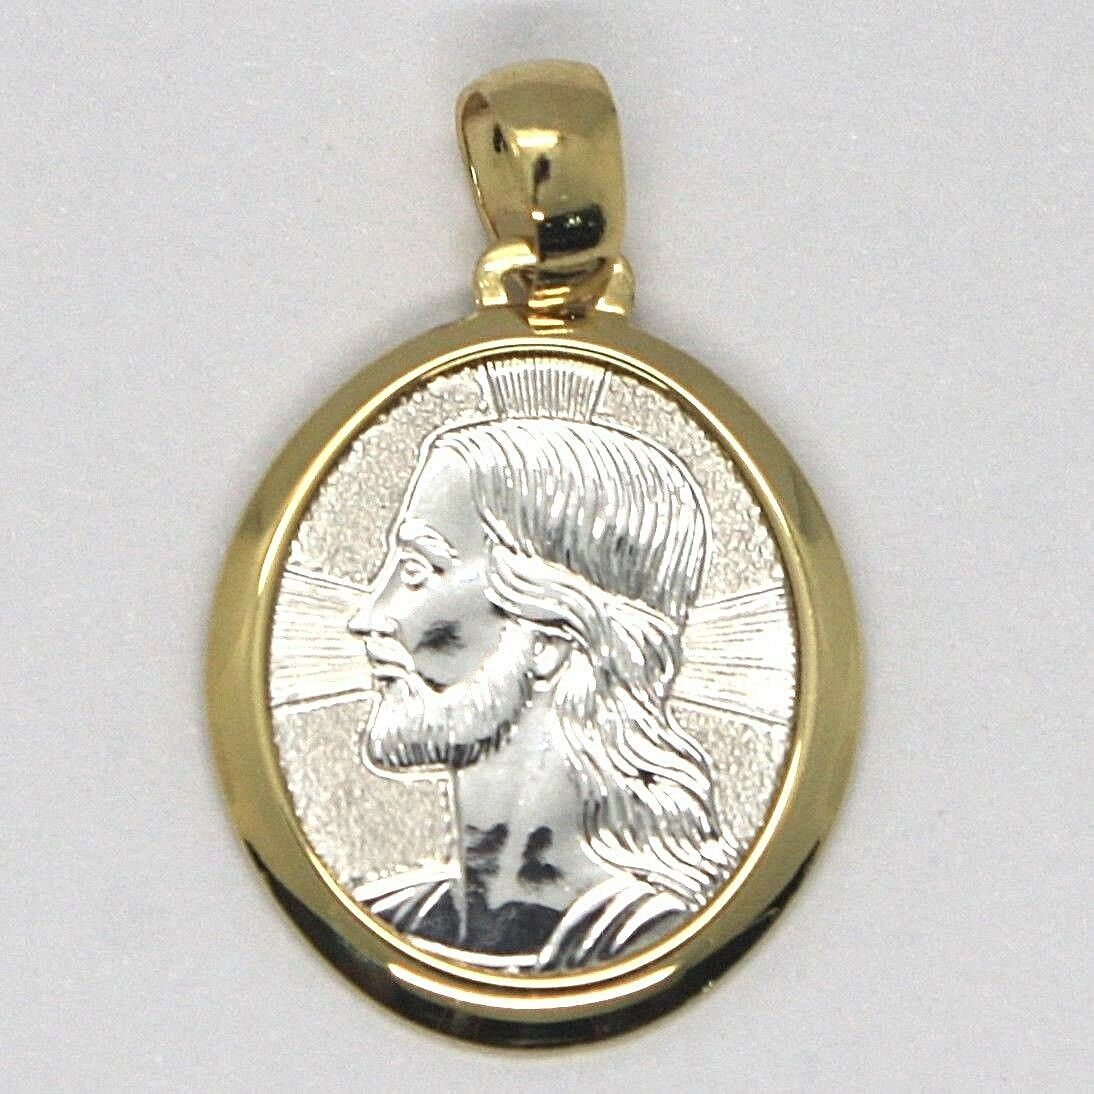 18K YELLOW & WHITE GOLD PENDANT OVAL MEDAL JESUS FACE ENGRAVABLE MADE IN ITALY